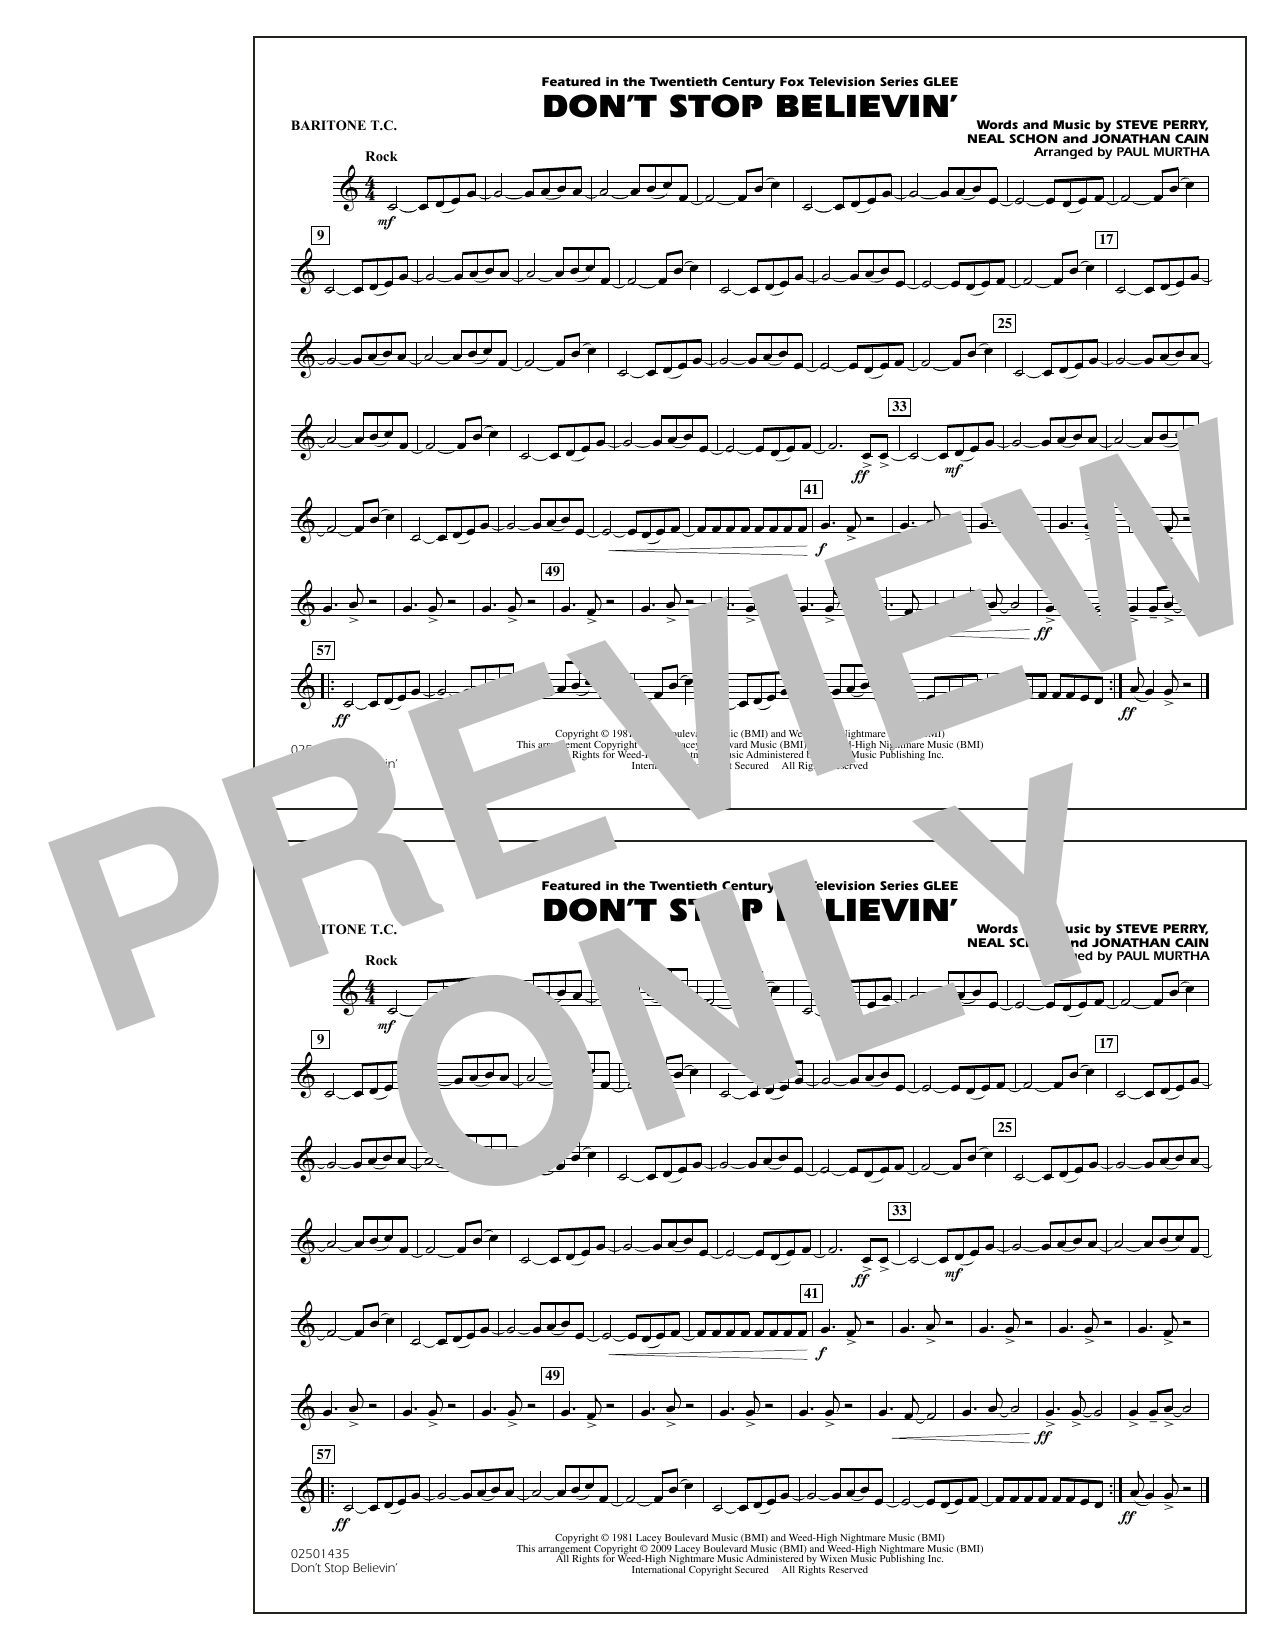 Paul Murtha Don't Stop Believin' - Baritone T.C. sheet music notes and chords. Download Printable PDF.